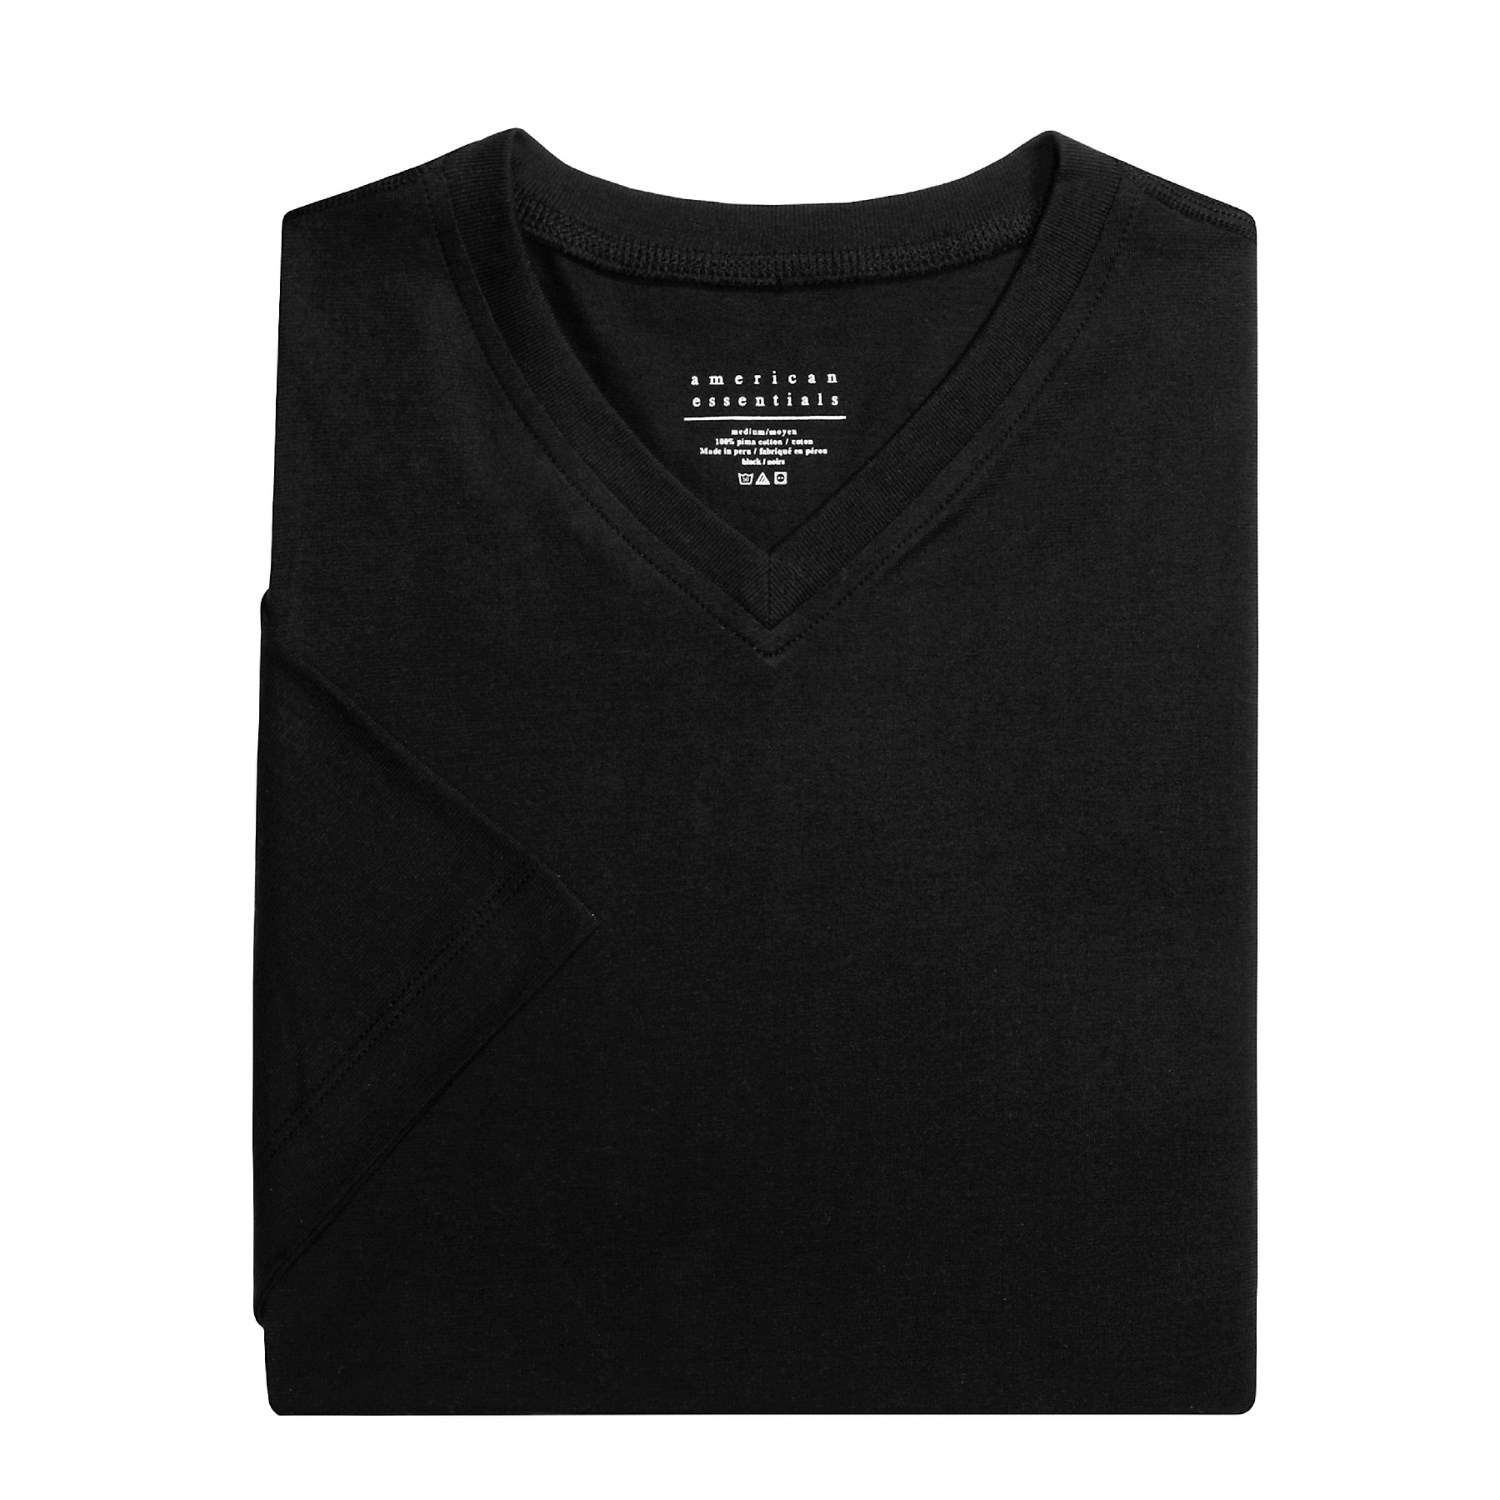 American essentials v neck t shirt for men 2137c save 41 for Peruvian cotton t shirts